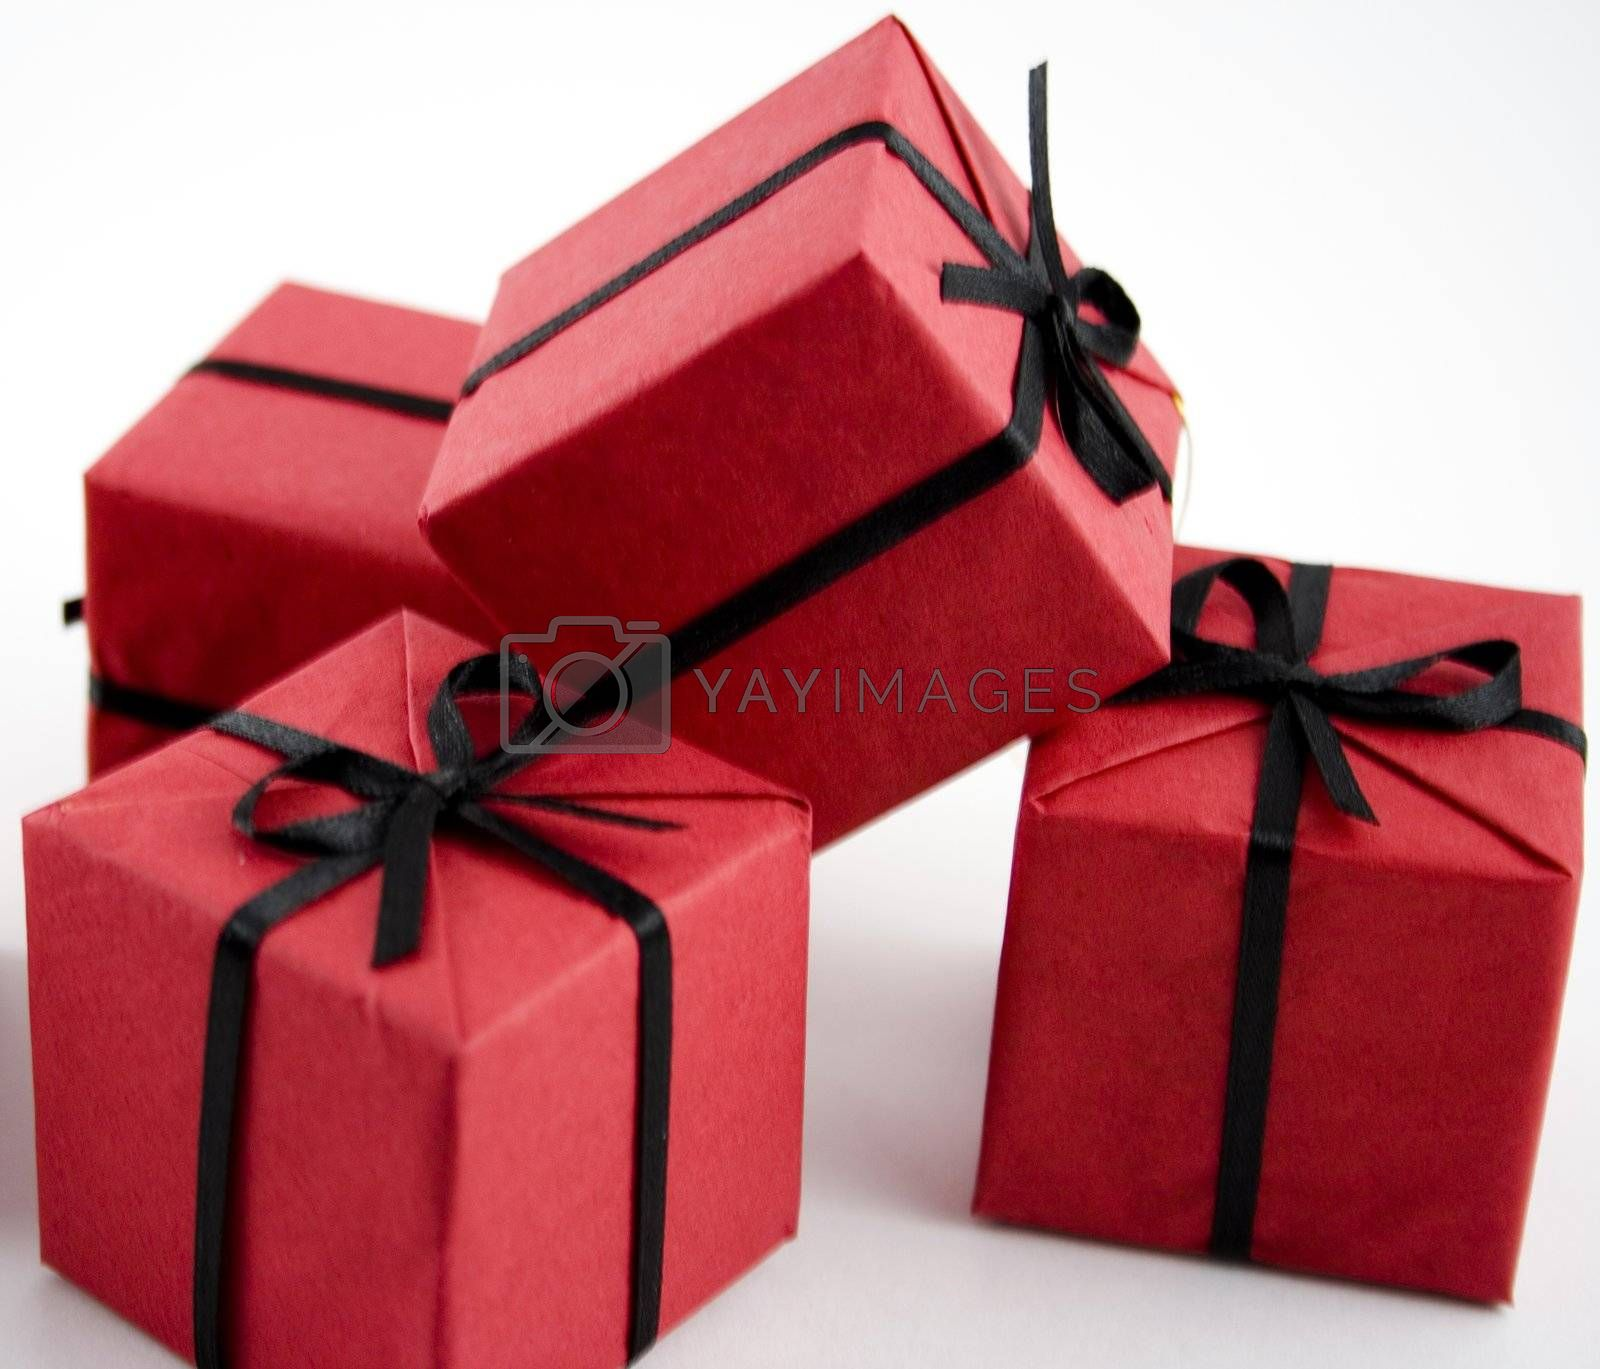 little red gifts isolated over white